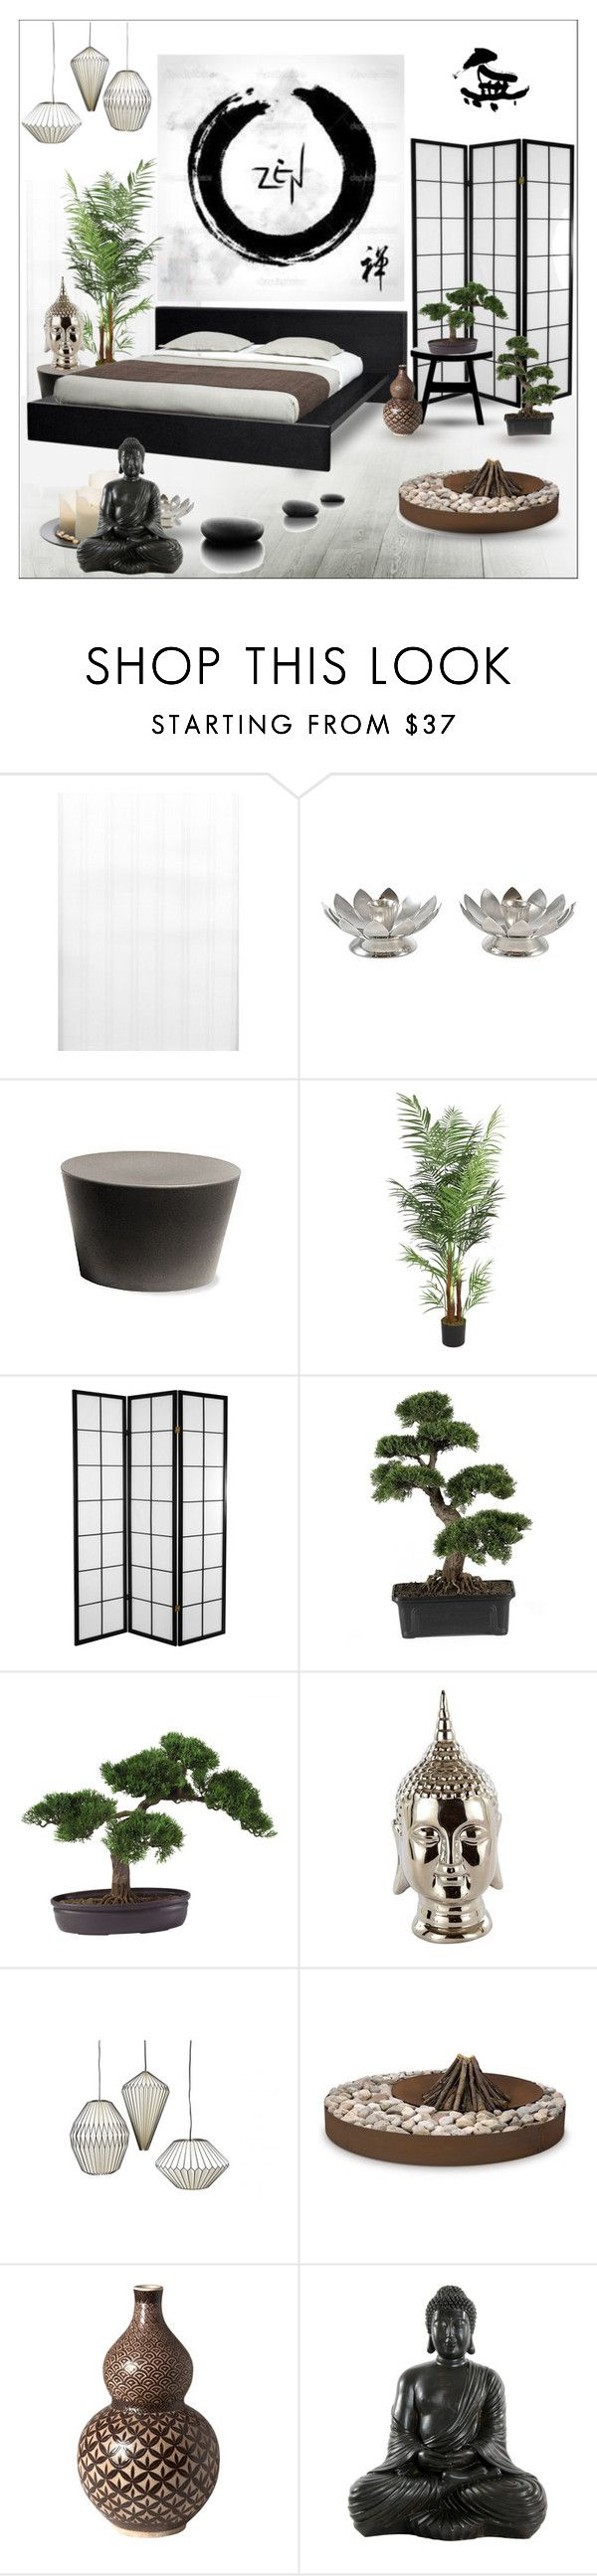 """Zen Bedroom"" by szaboesz ❤ liked on Polyvore featuring interior, interiors, interior design, home, home decor, interior decorating, Brewster Home Fashions, Laura Ashley, Nearly Natural and Jayson Home"